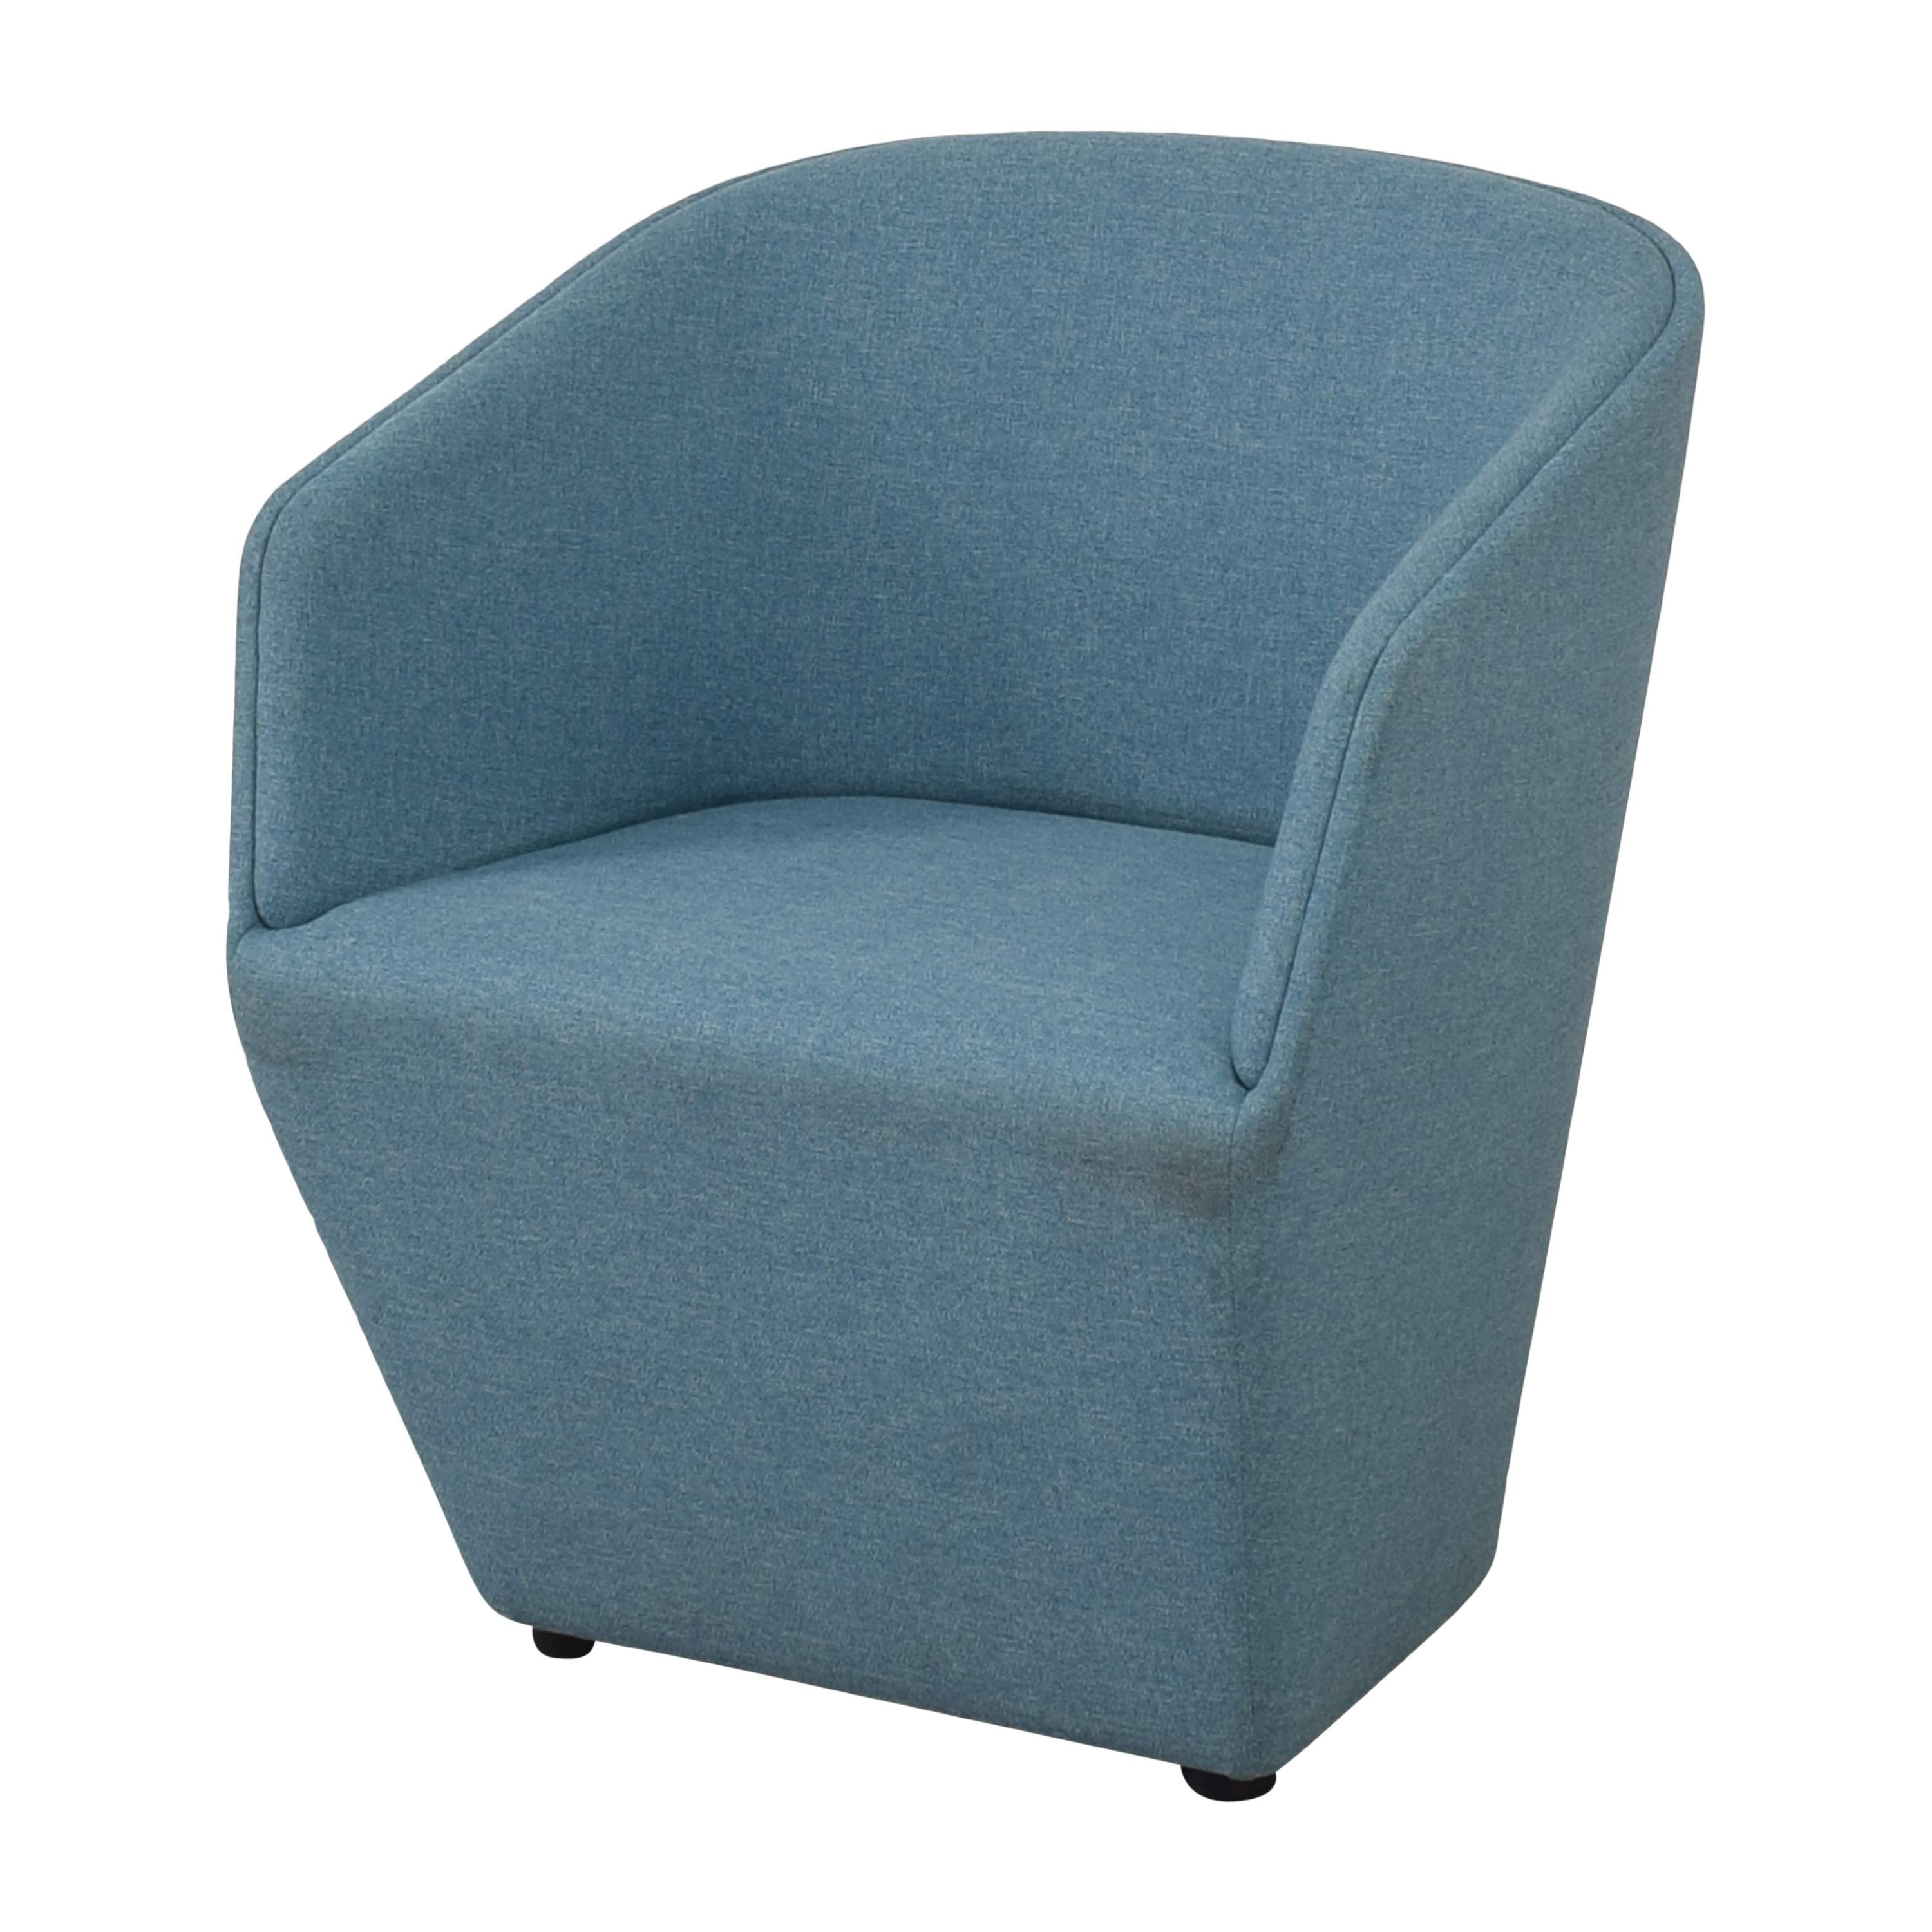 Poppin Poppin Pitch Club Chair discount